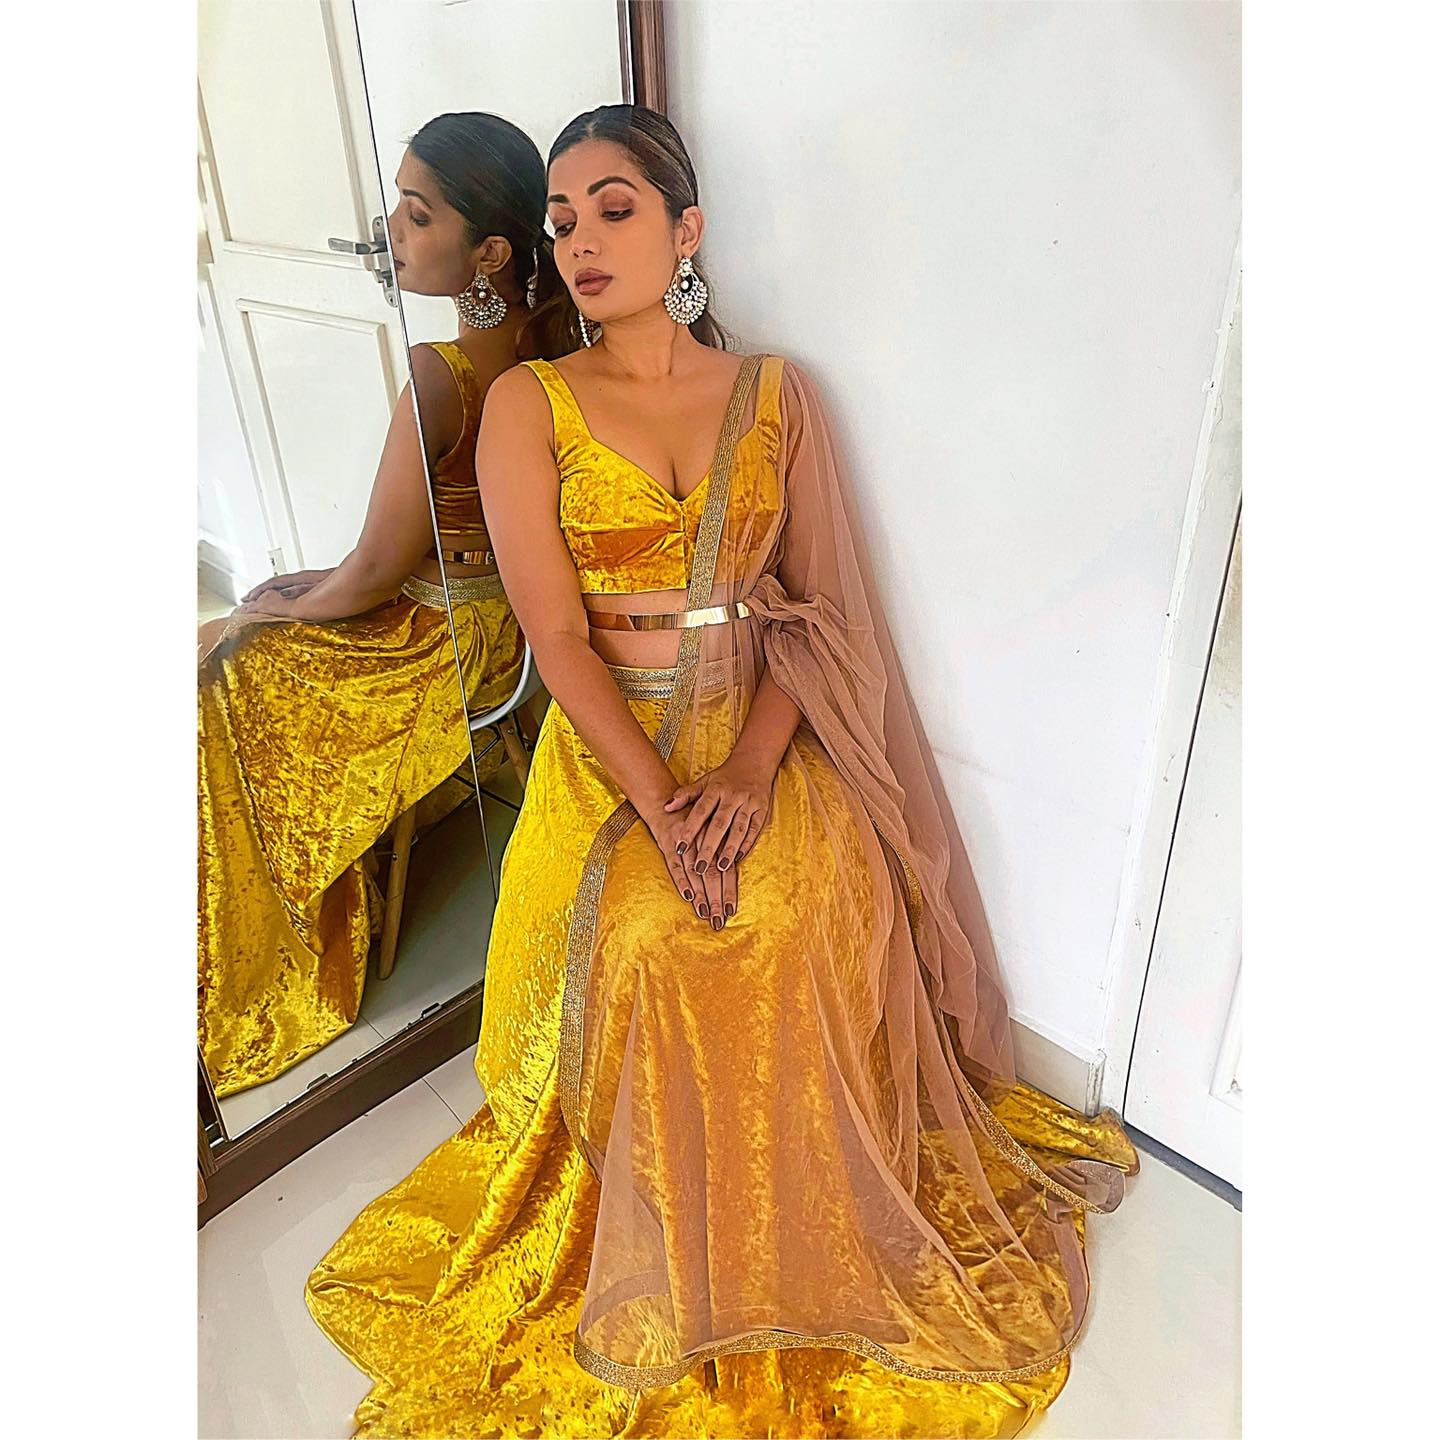 New design .  MUSTARD MELT.  Full velvet lehenga in mustard gold. It's a beautiful soft velvet lehenga and blouse with gold accents. The dupatta is a taupe beige soft net with a gold border. 2021-05-12